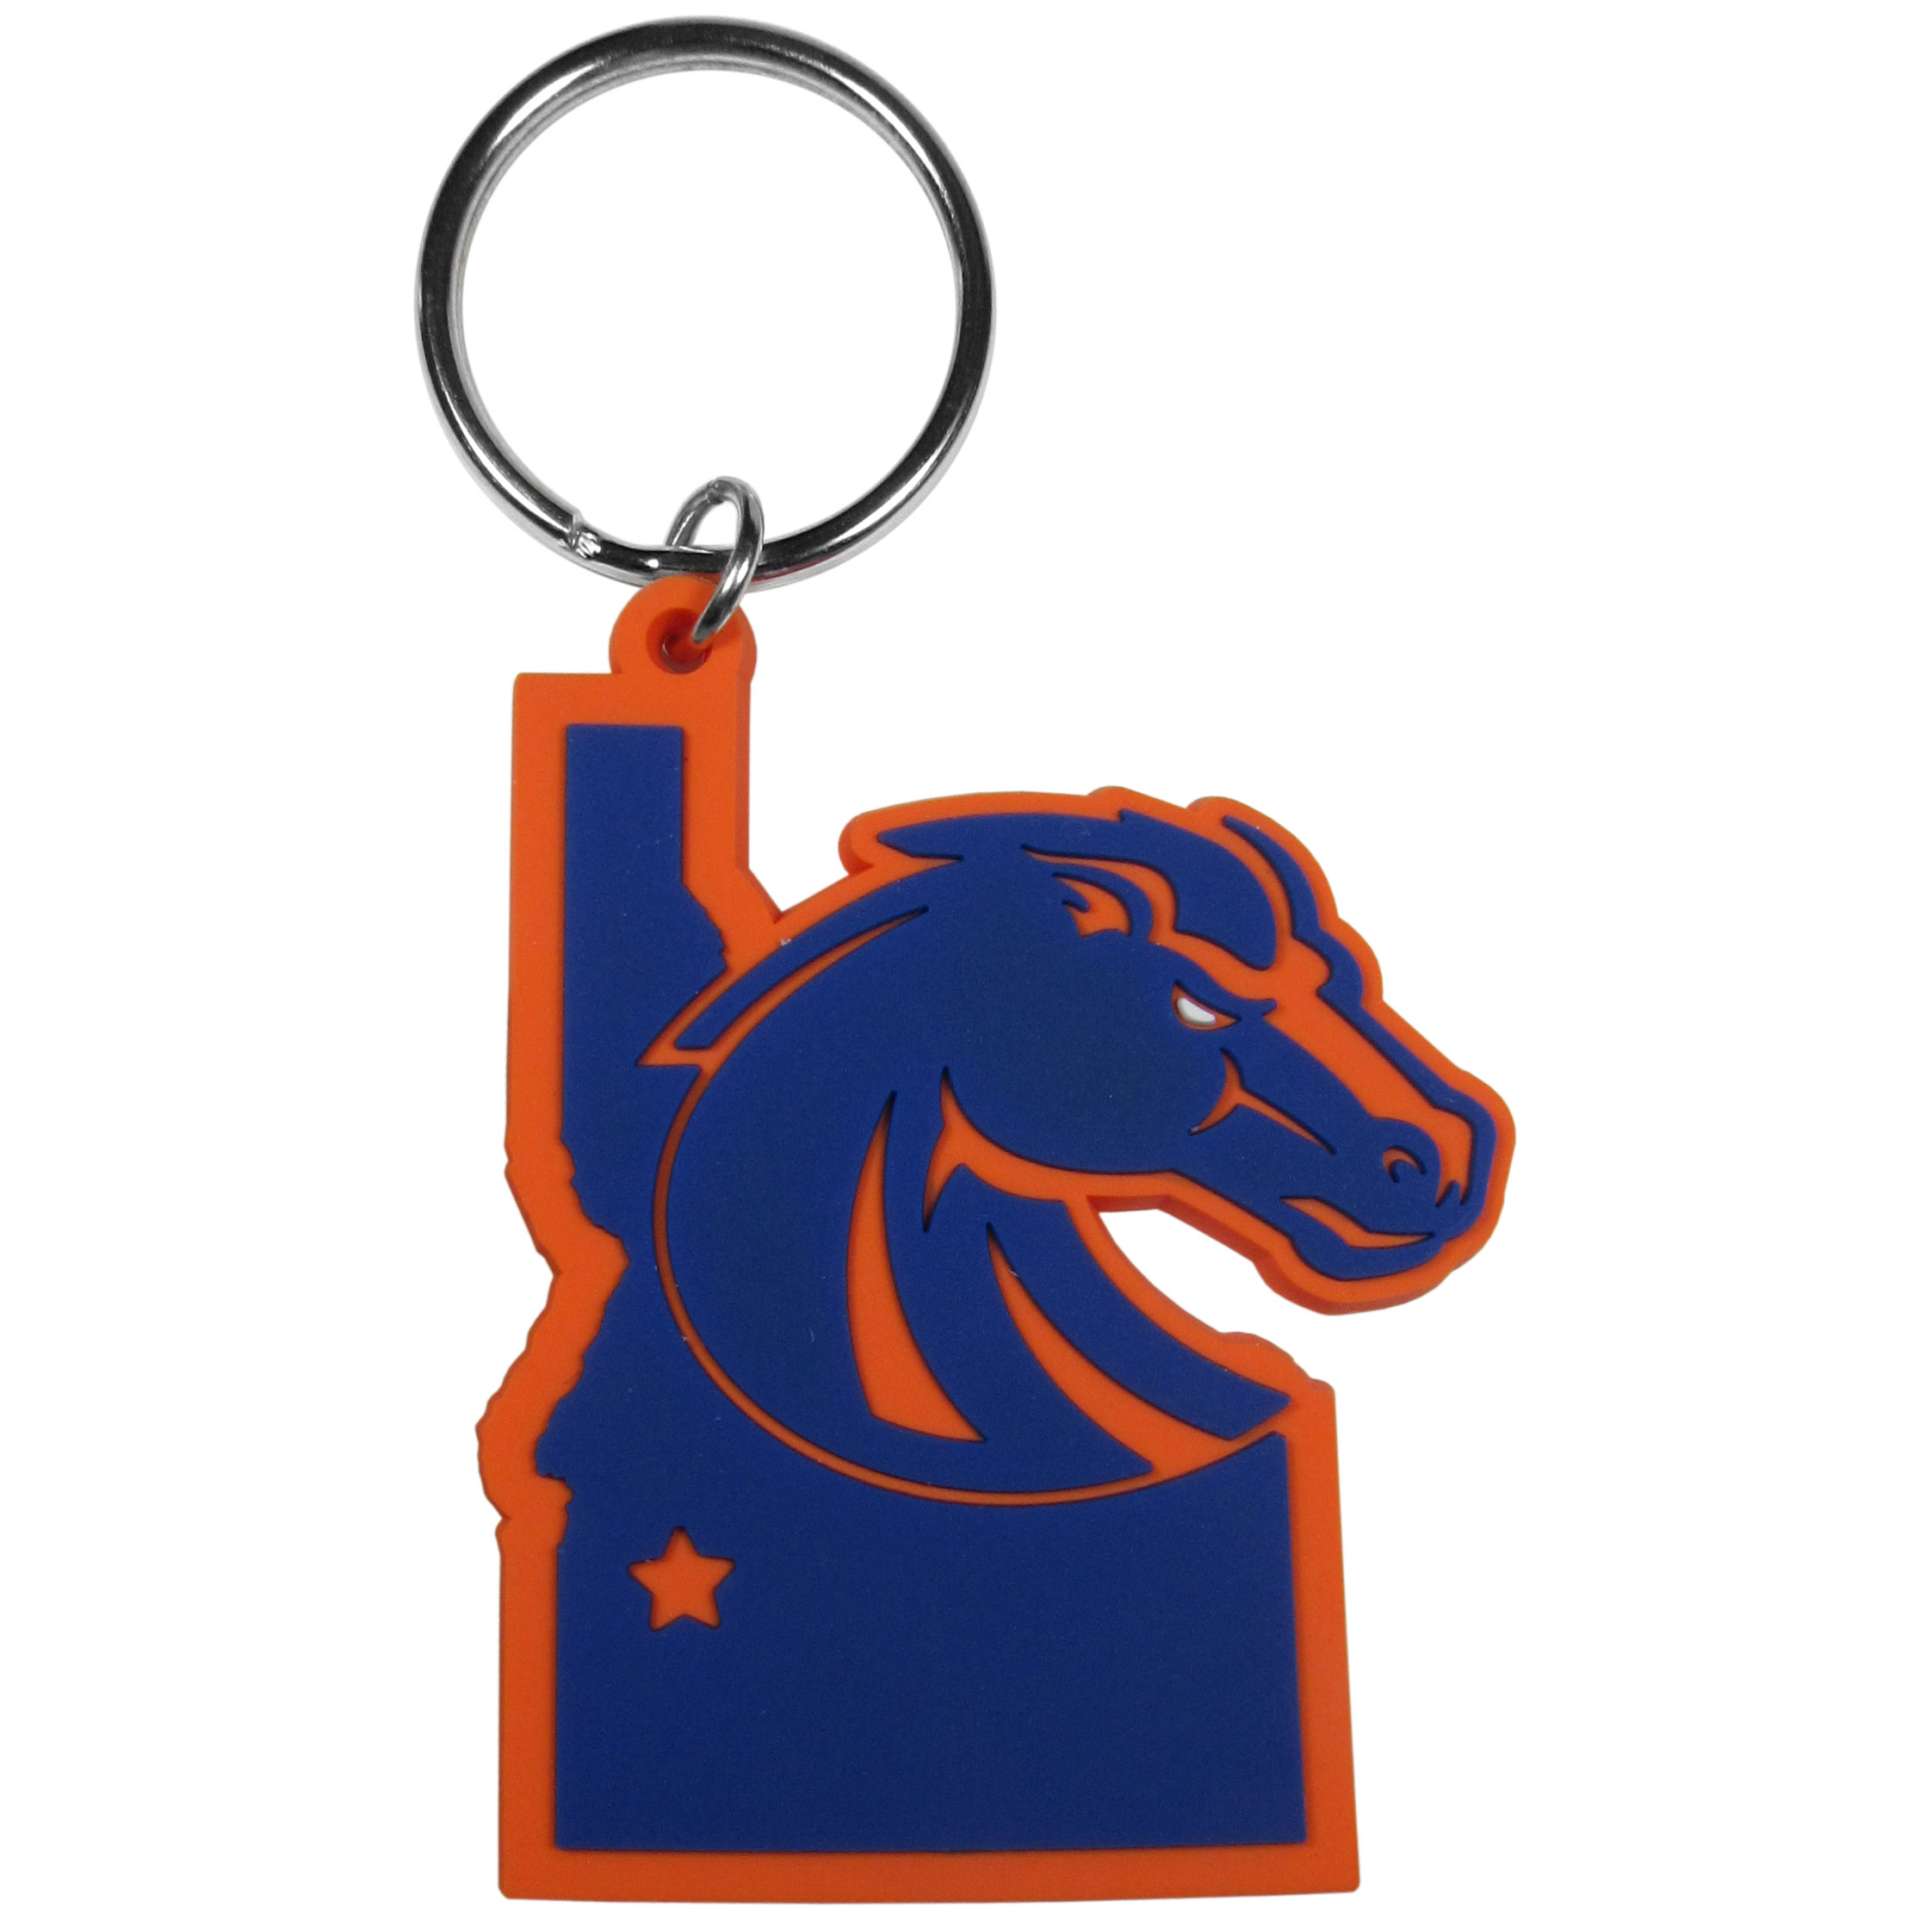 Boise St. Broncos Home State Flexi Key Chain - Our flexible Boise St. Broncos key chains are a fun way to carry your team with you. The pliable rubber material is extremely durable and the layered colors add a great 3D look to the key chain. This is really where quality and a great price meet to create a true fan favorite.